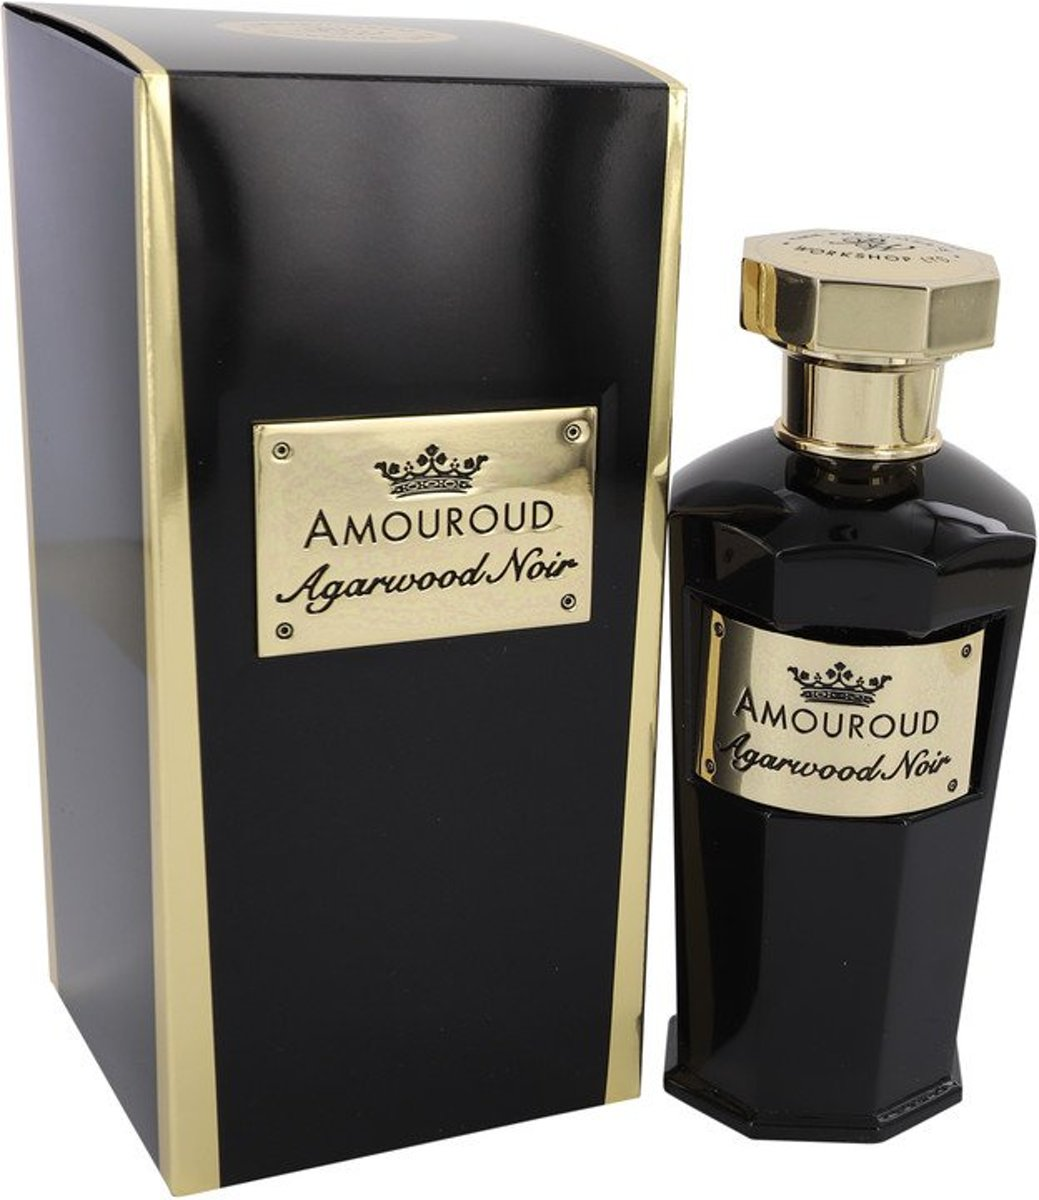 Amouroud Agarwood Noir Eau de Parfum Spray 100 ml